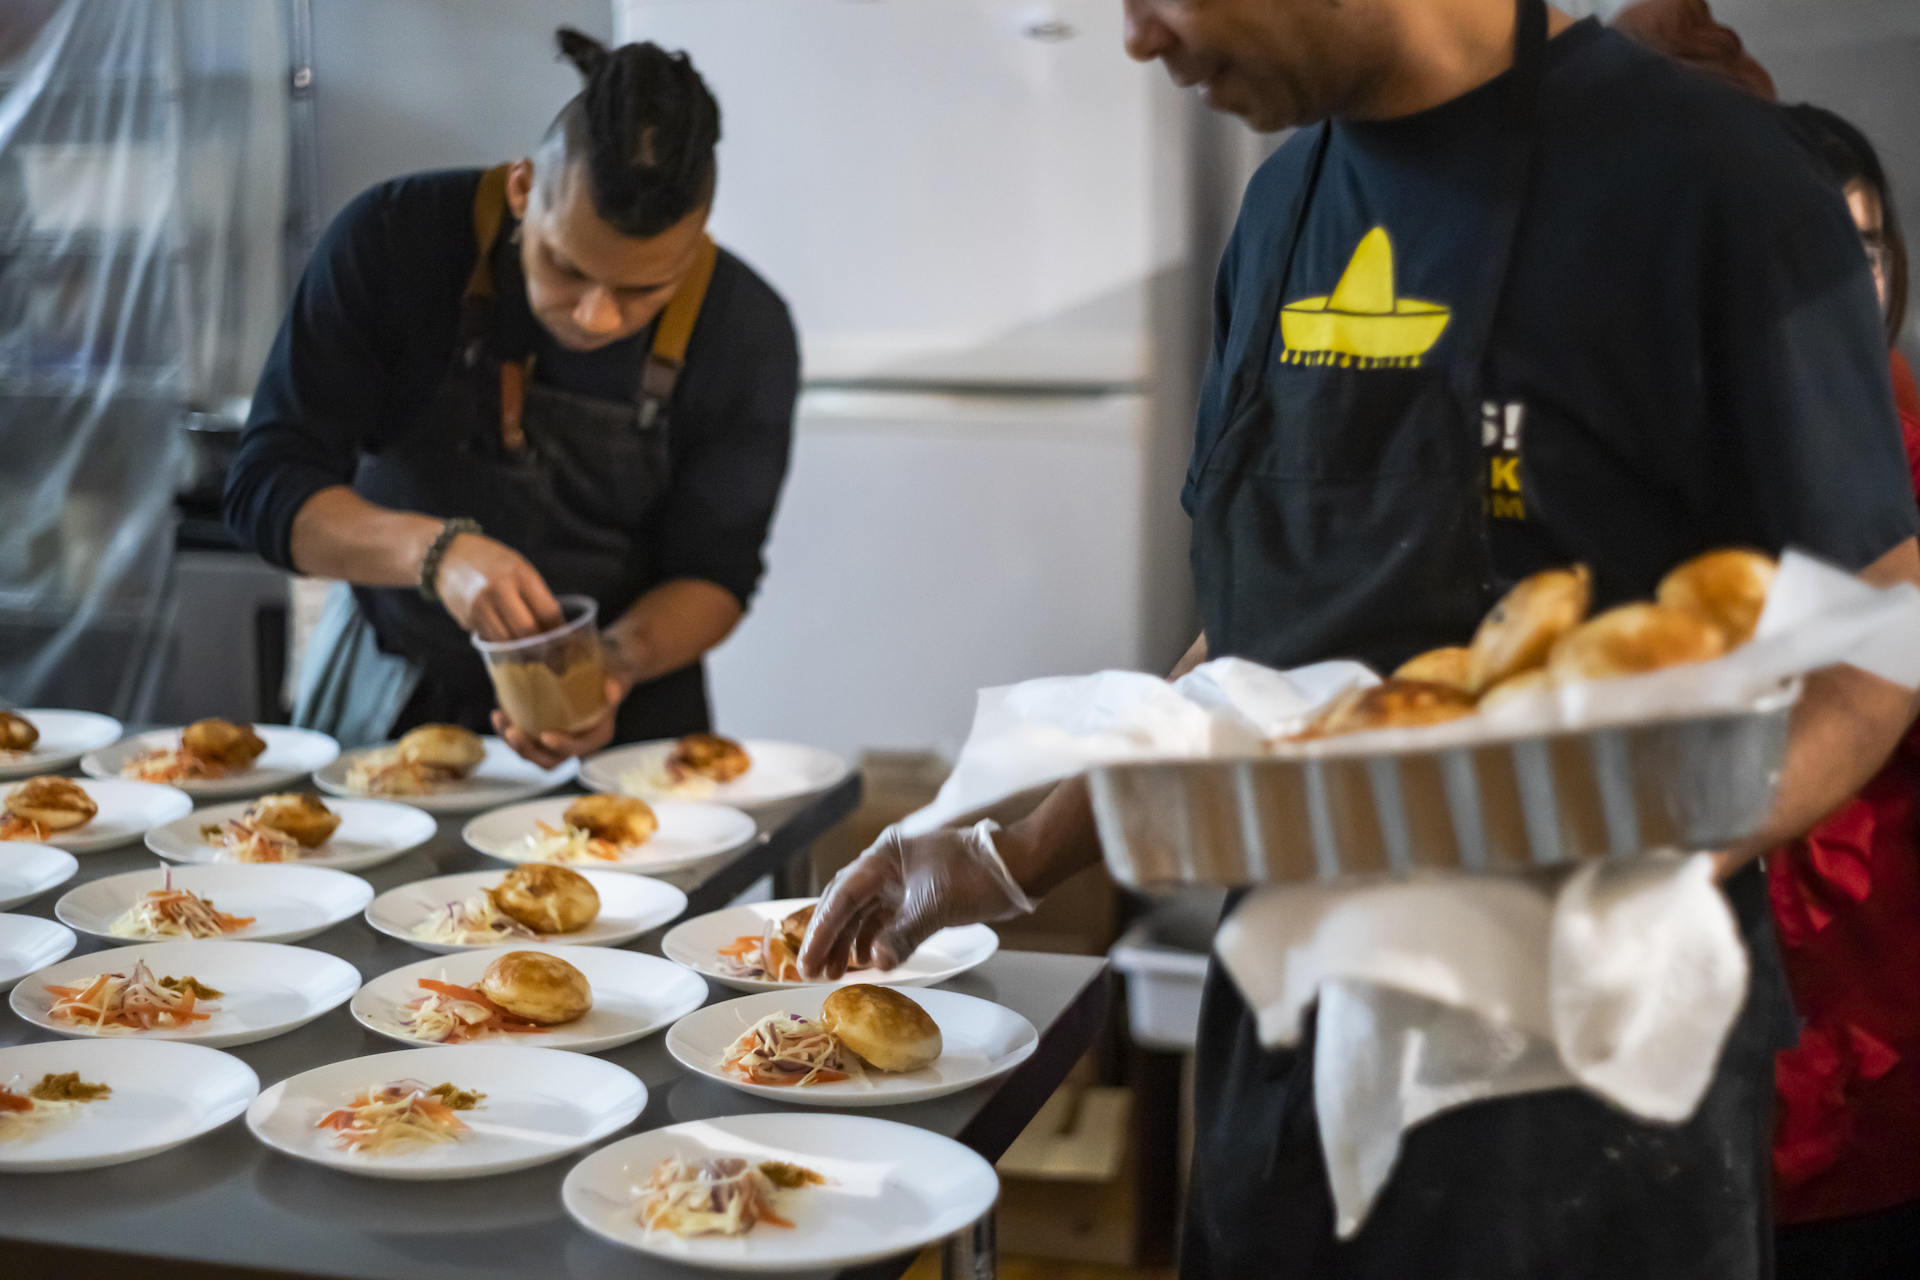 tow chefs in the kitchen plating delicious African cuisine